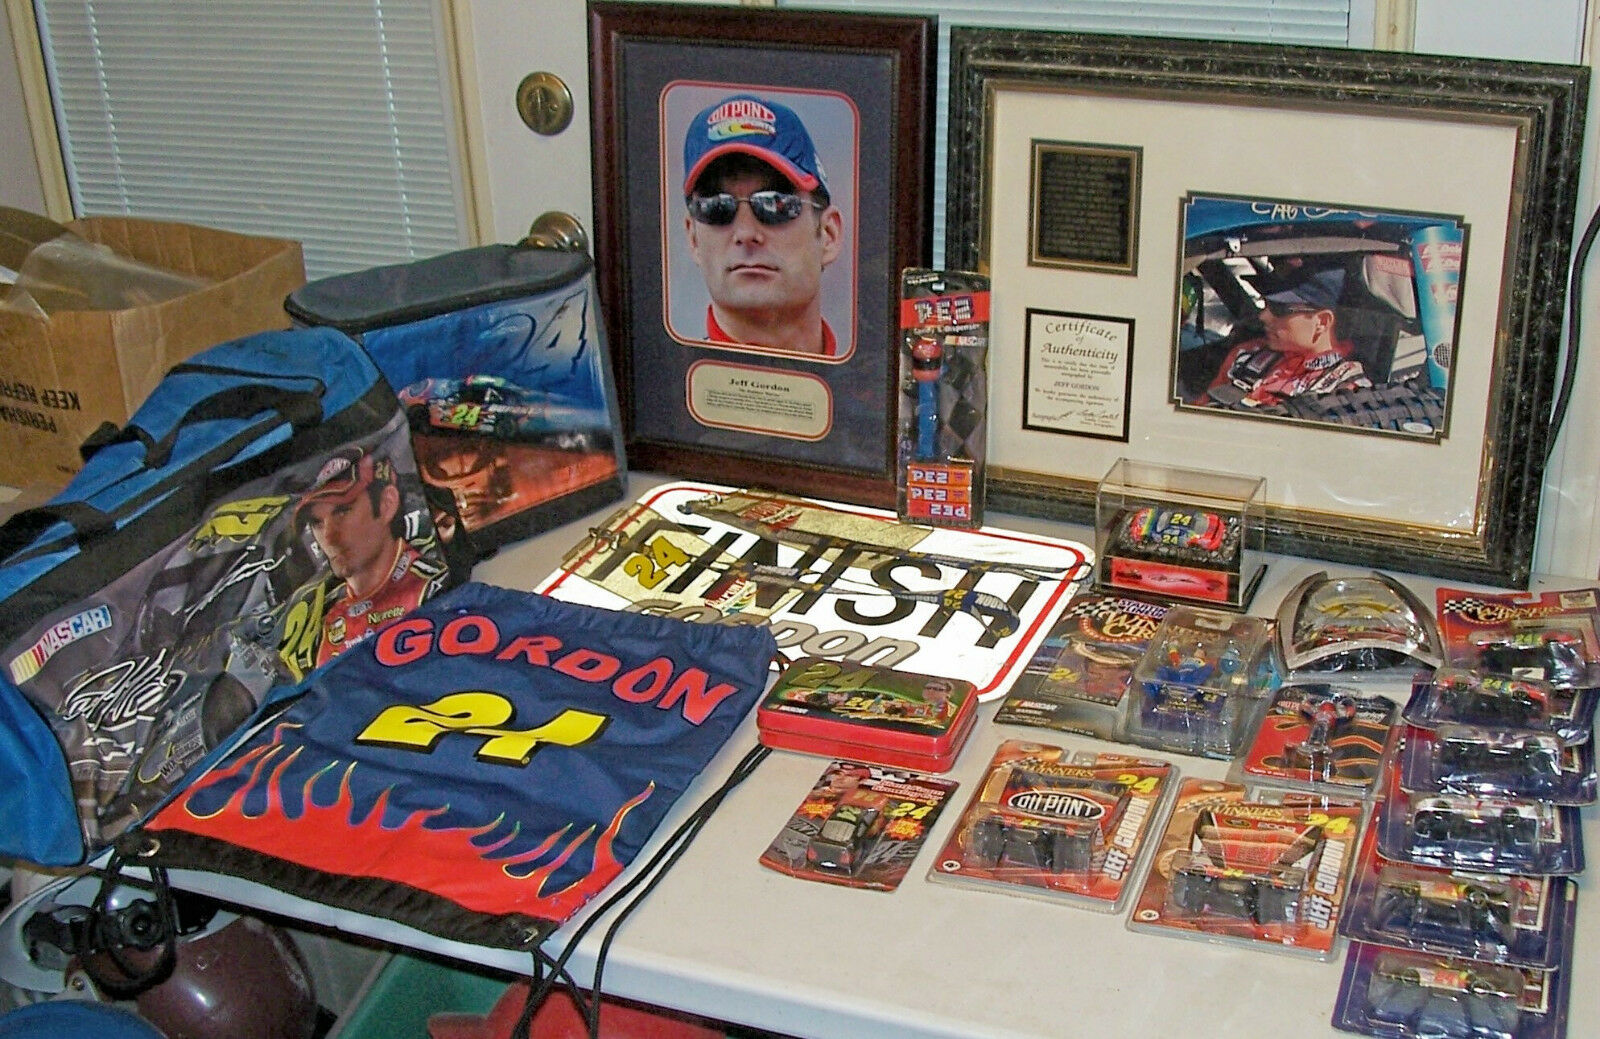 Jeff Gordon 24 NASCAR 1 64 Toy Model Car Autographed Signed Picture Collectible